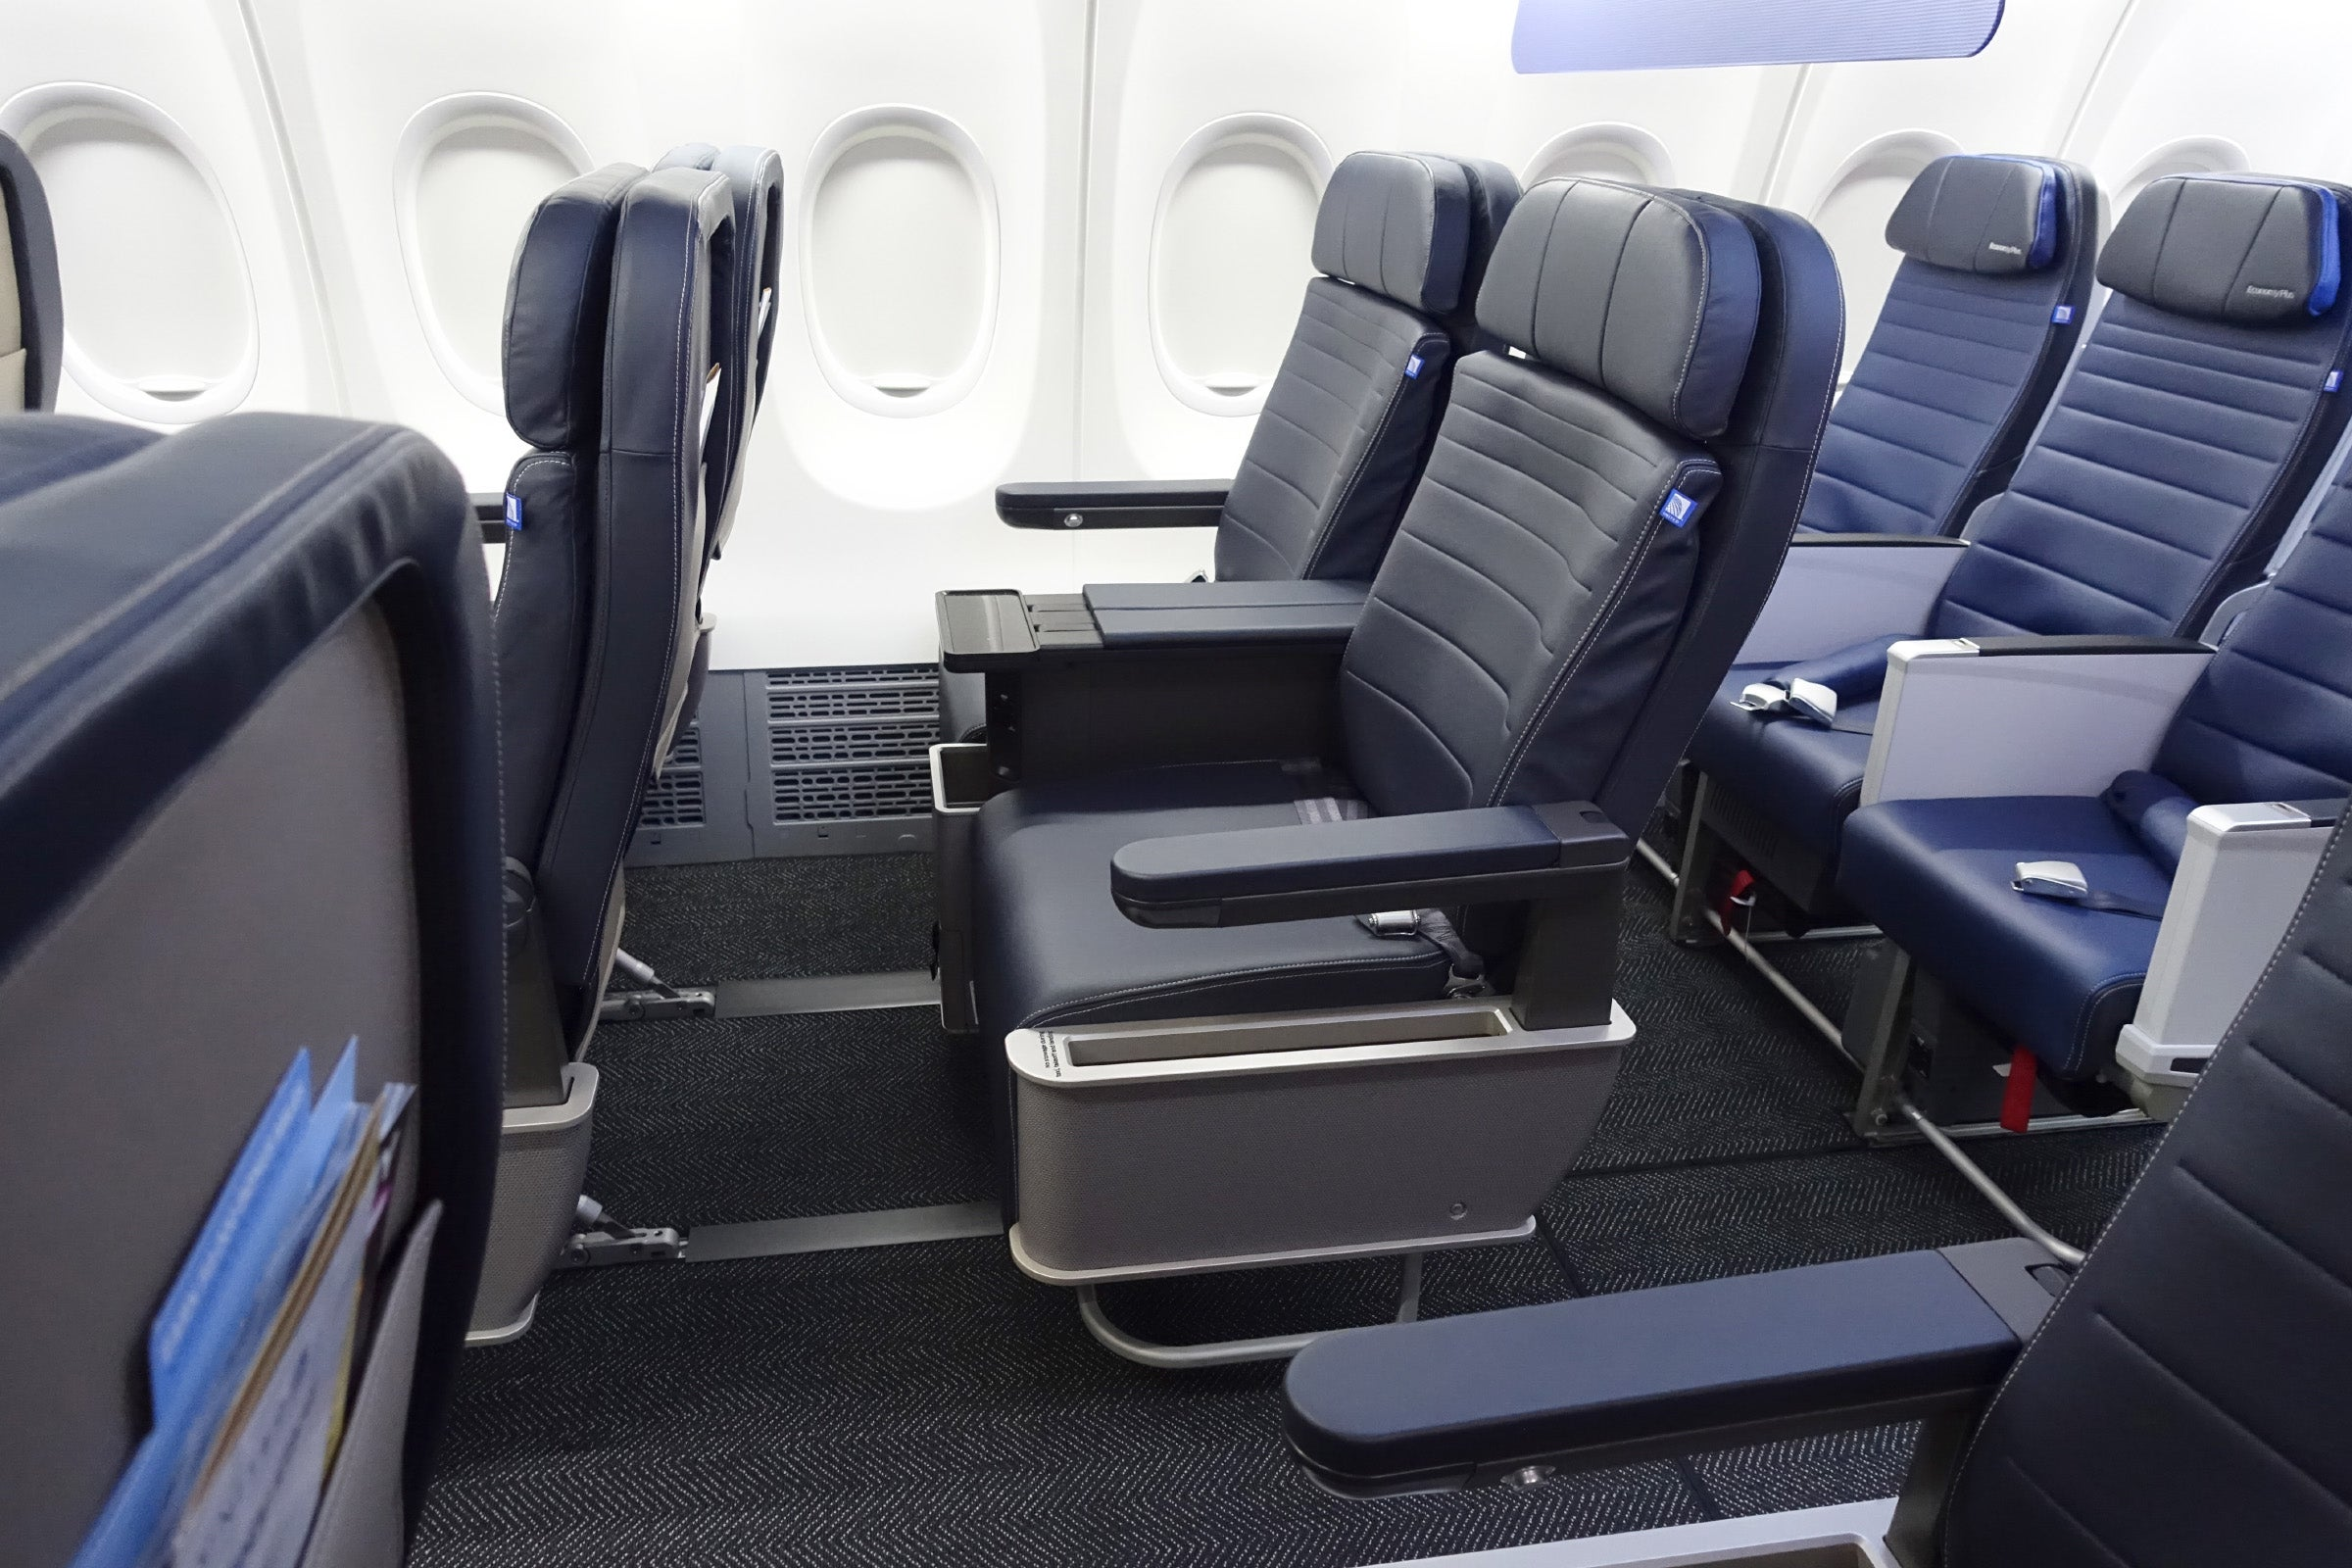 United Airlines Pilots Will Soon Get Confirmed Seats In First Class